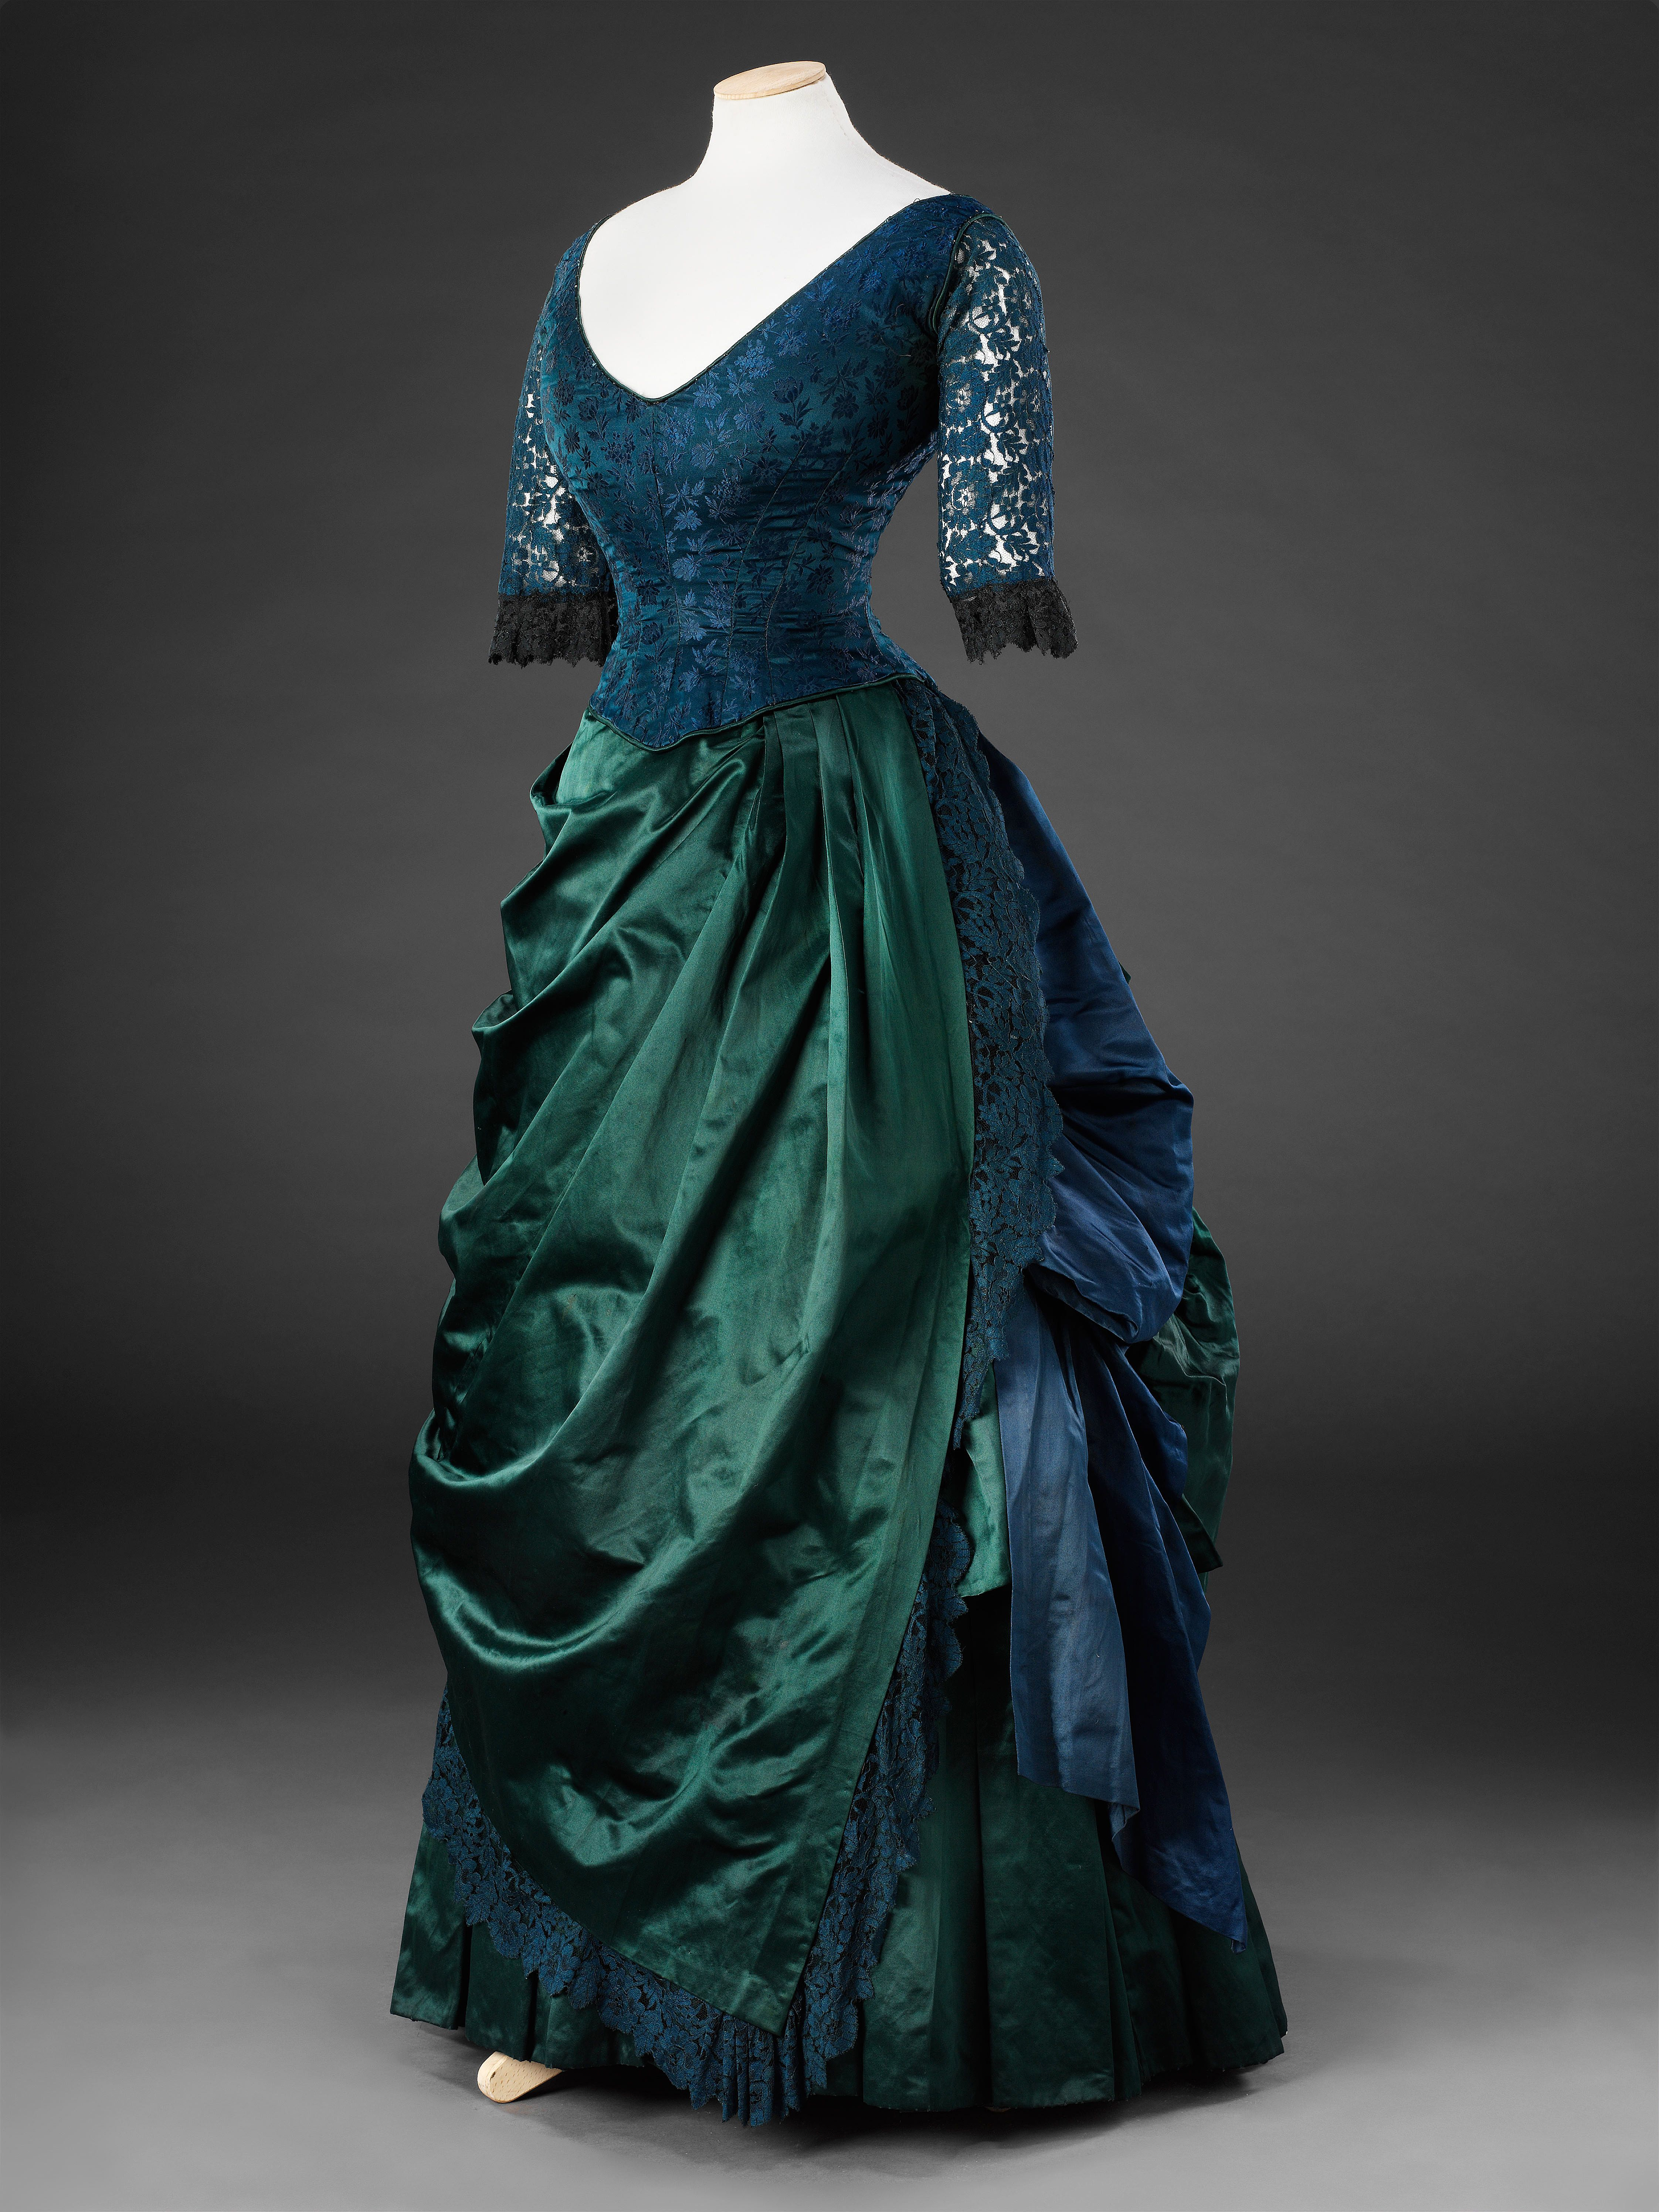 a097382c50e45 Dress jewel tones maybe 1870s because o bustle, but don't know, emerald  green and deep sapphire blue peacock jewel gorgeous